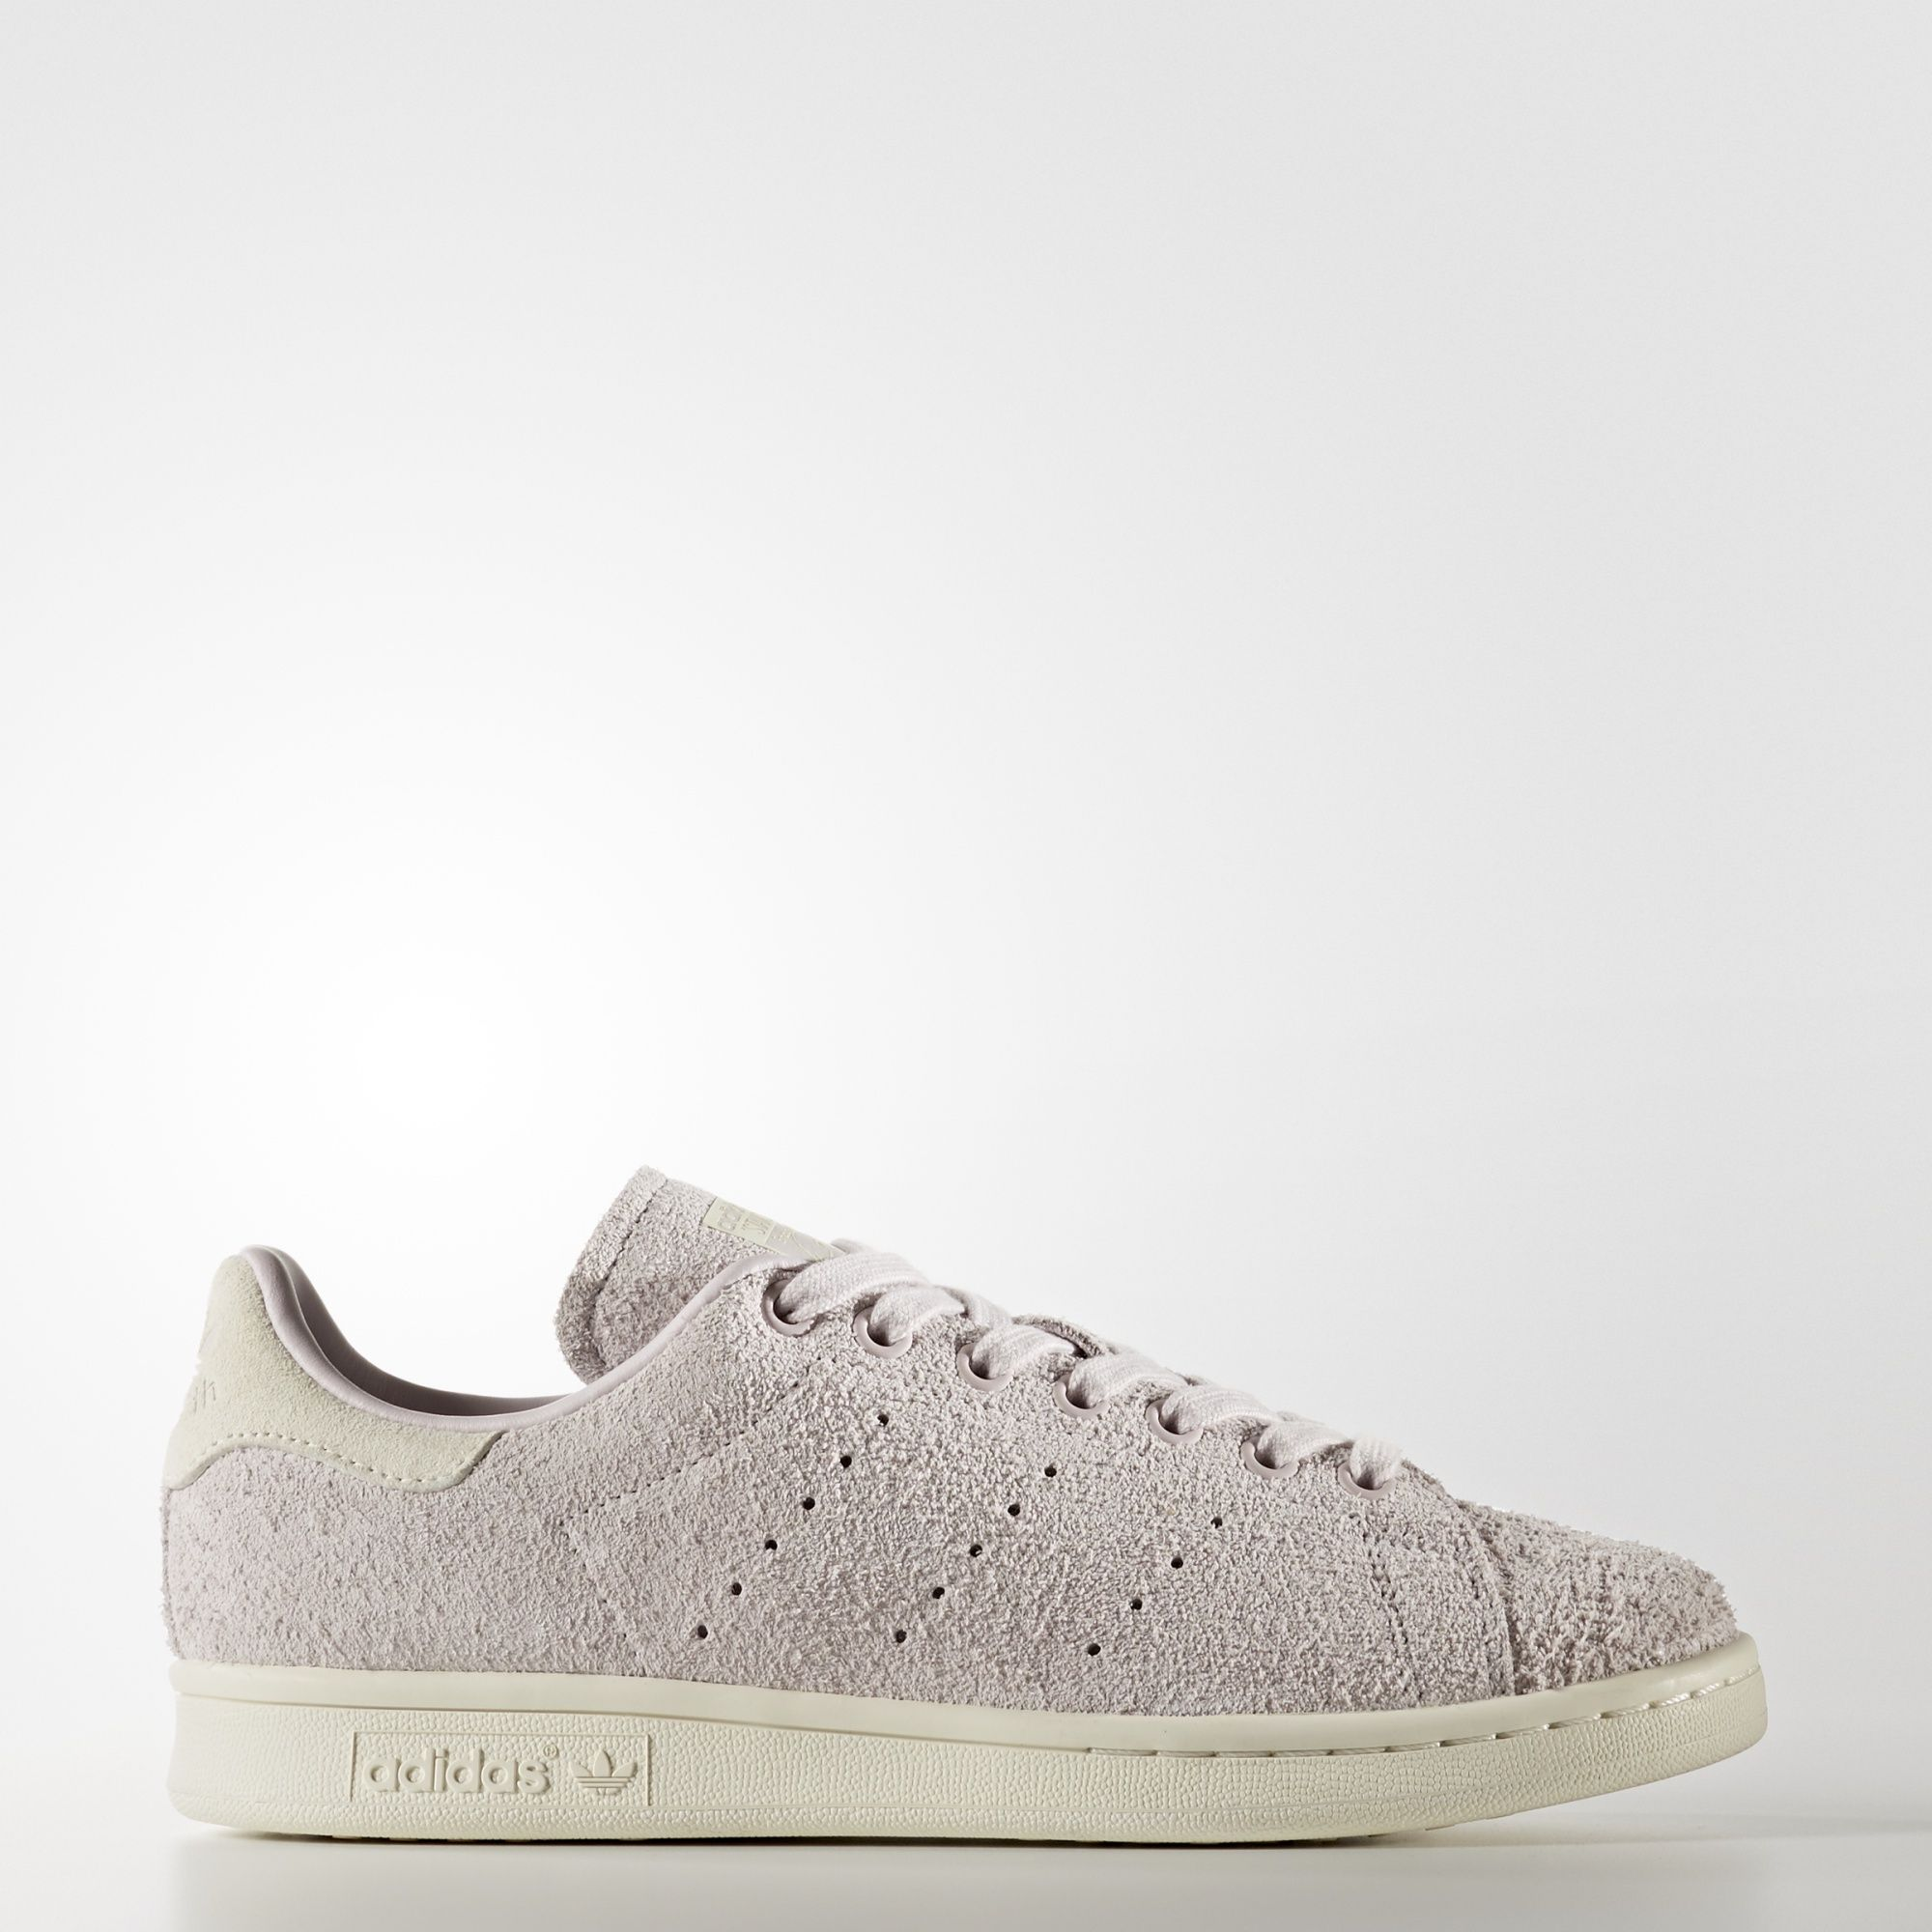 A true classic never goes out of style. These women's shoes have the clean look and signature lines of the original Stan Smith sneaker, remade with a textured suede upper. A contrast heel tab and perforated 3-Stripes preserve the heritage design.